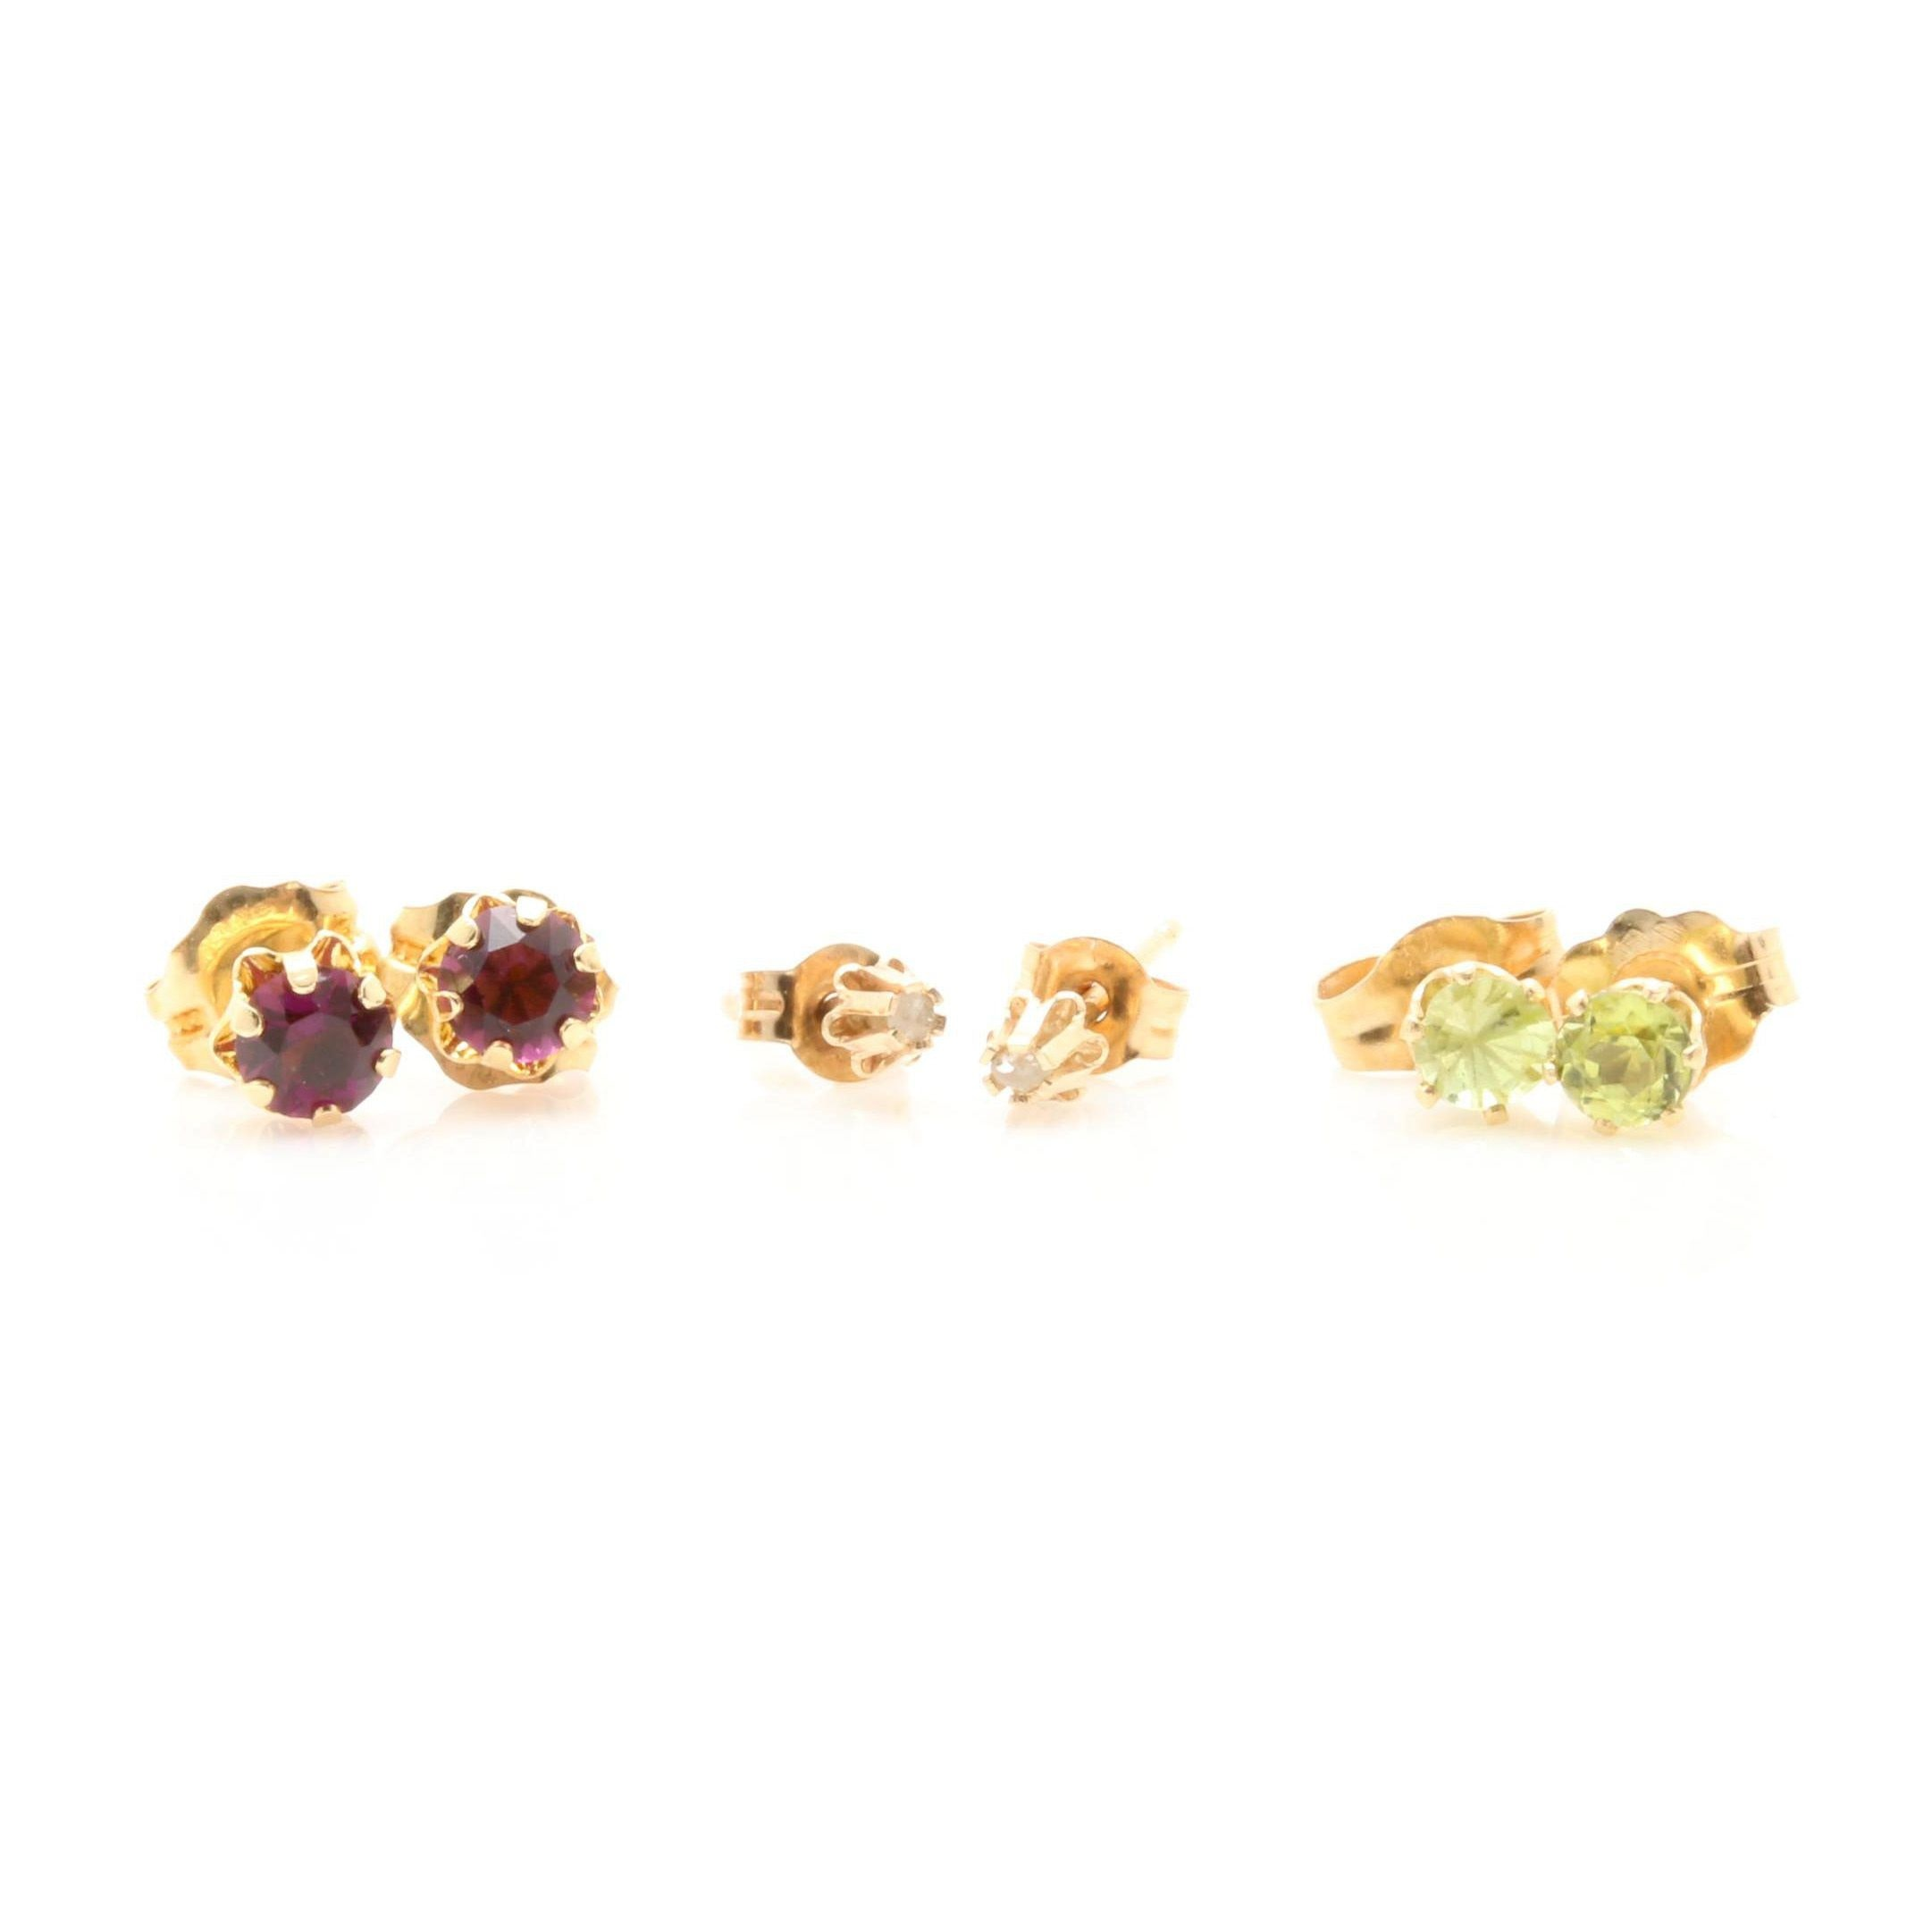 14K Yellow Gold Stud Earring Selection Including Peridot and Diamond